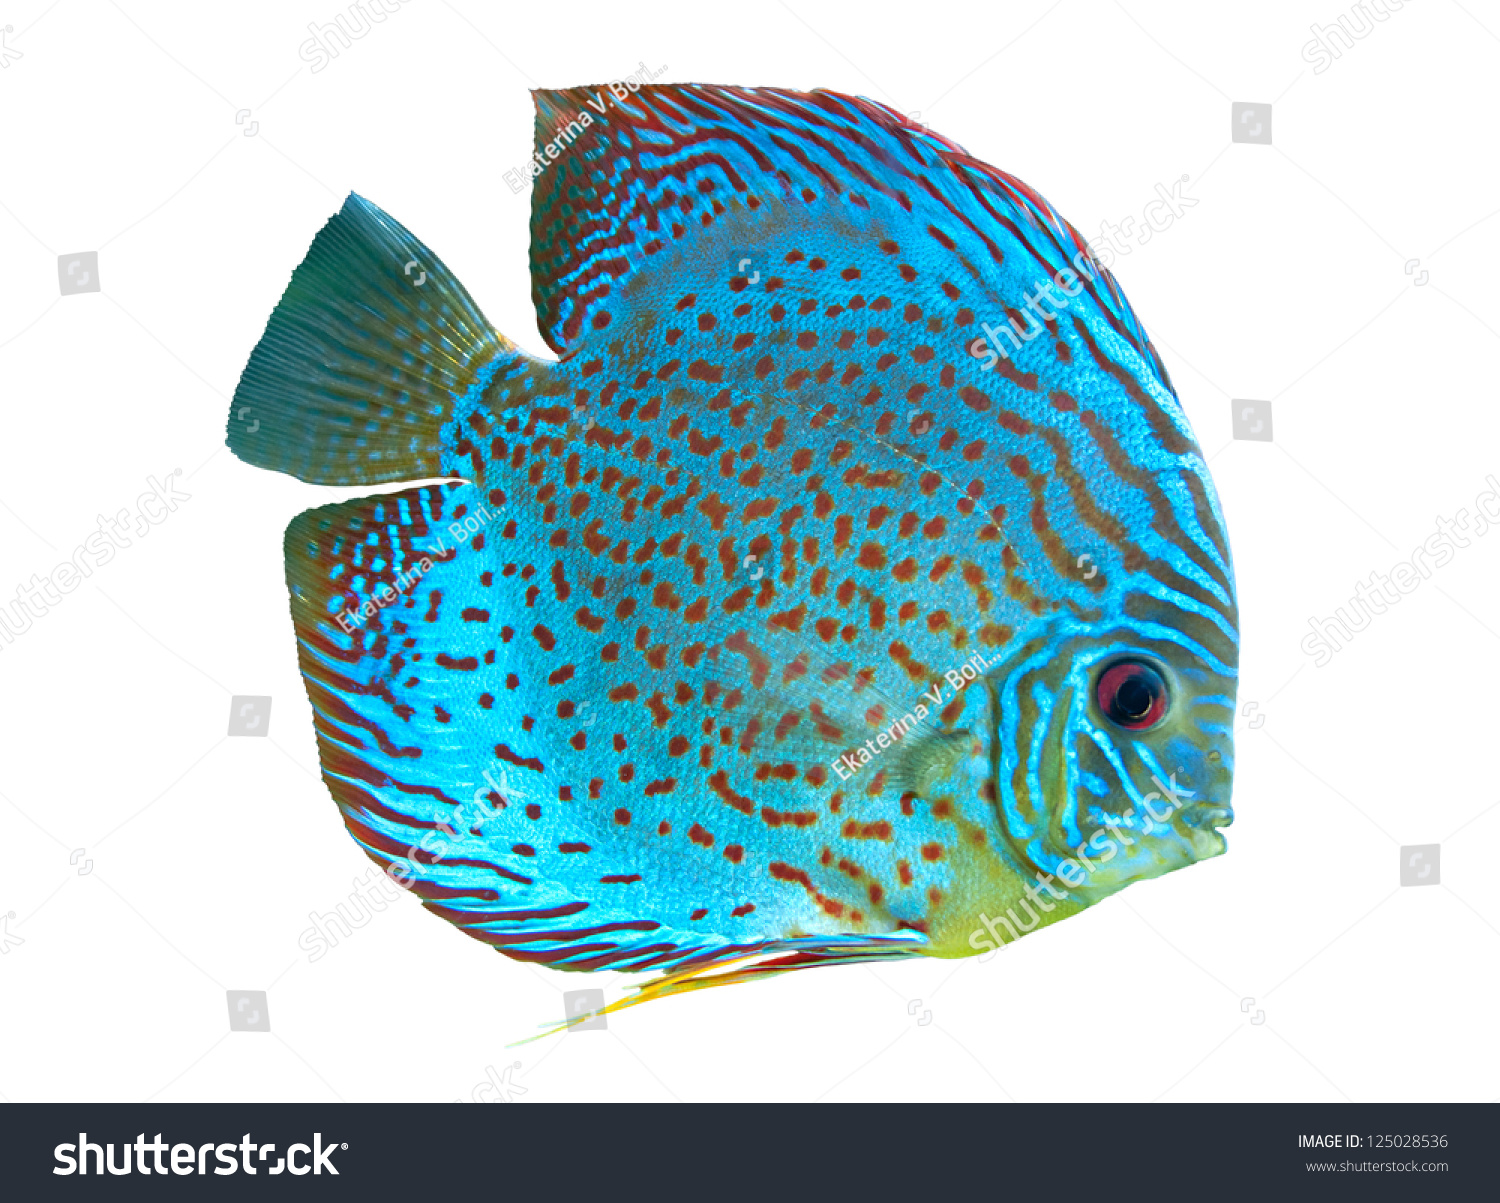 Freshwater fish amazon - Spotted Blue Discus Freshwater Fish Native To The Amazon River Isolated On White